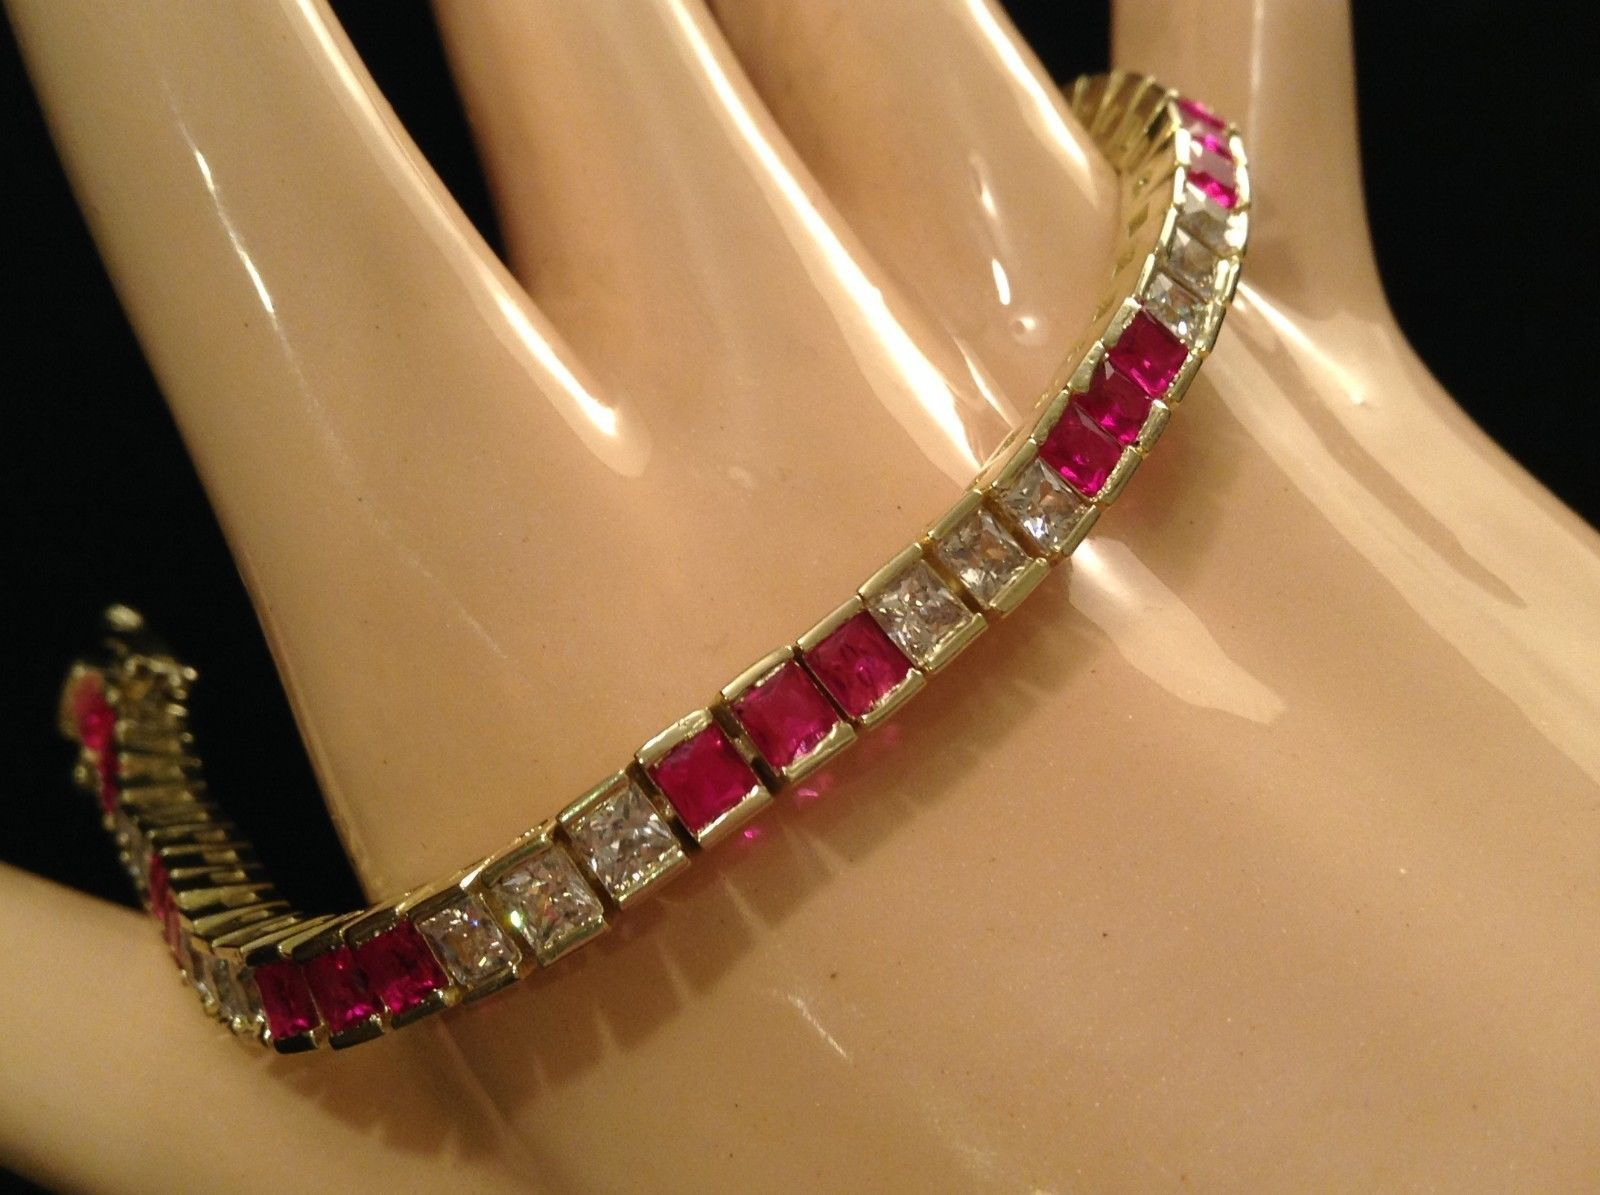 Gorgeous sparkly CZ tennis bracelet in choice silver or 14K Gold sapphire ruby